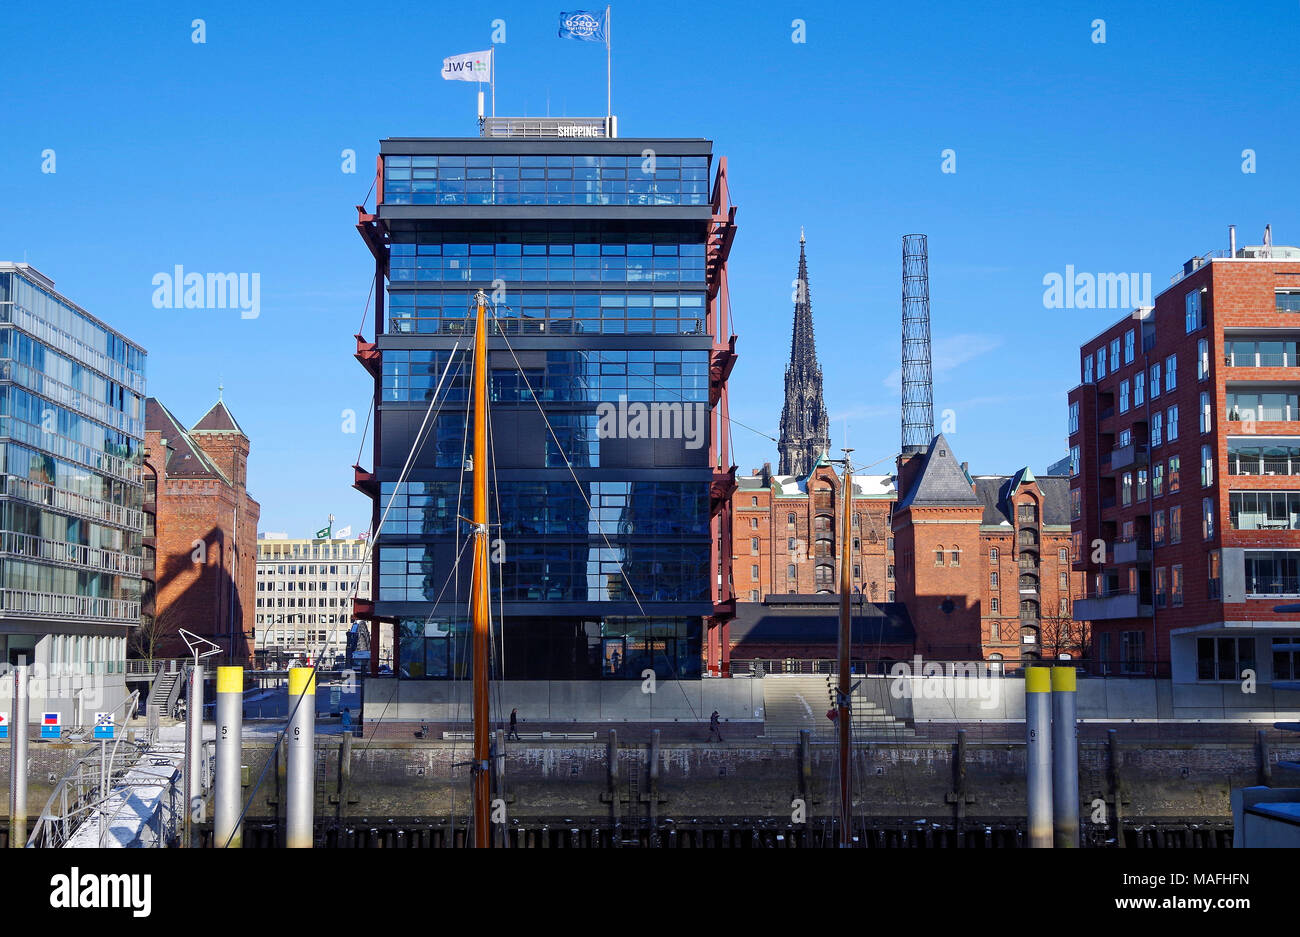 Residential and office buildings on a former docklands jetty of the Hamburg docks, the first phase of the massive HafenCity urban renewal project - Stock Image